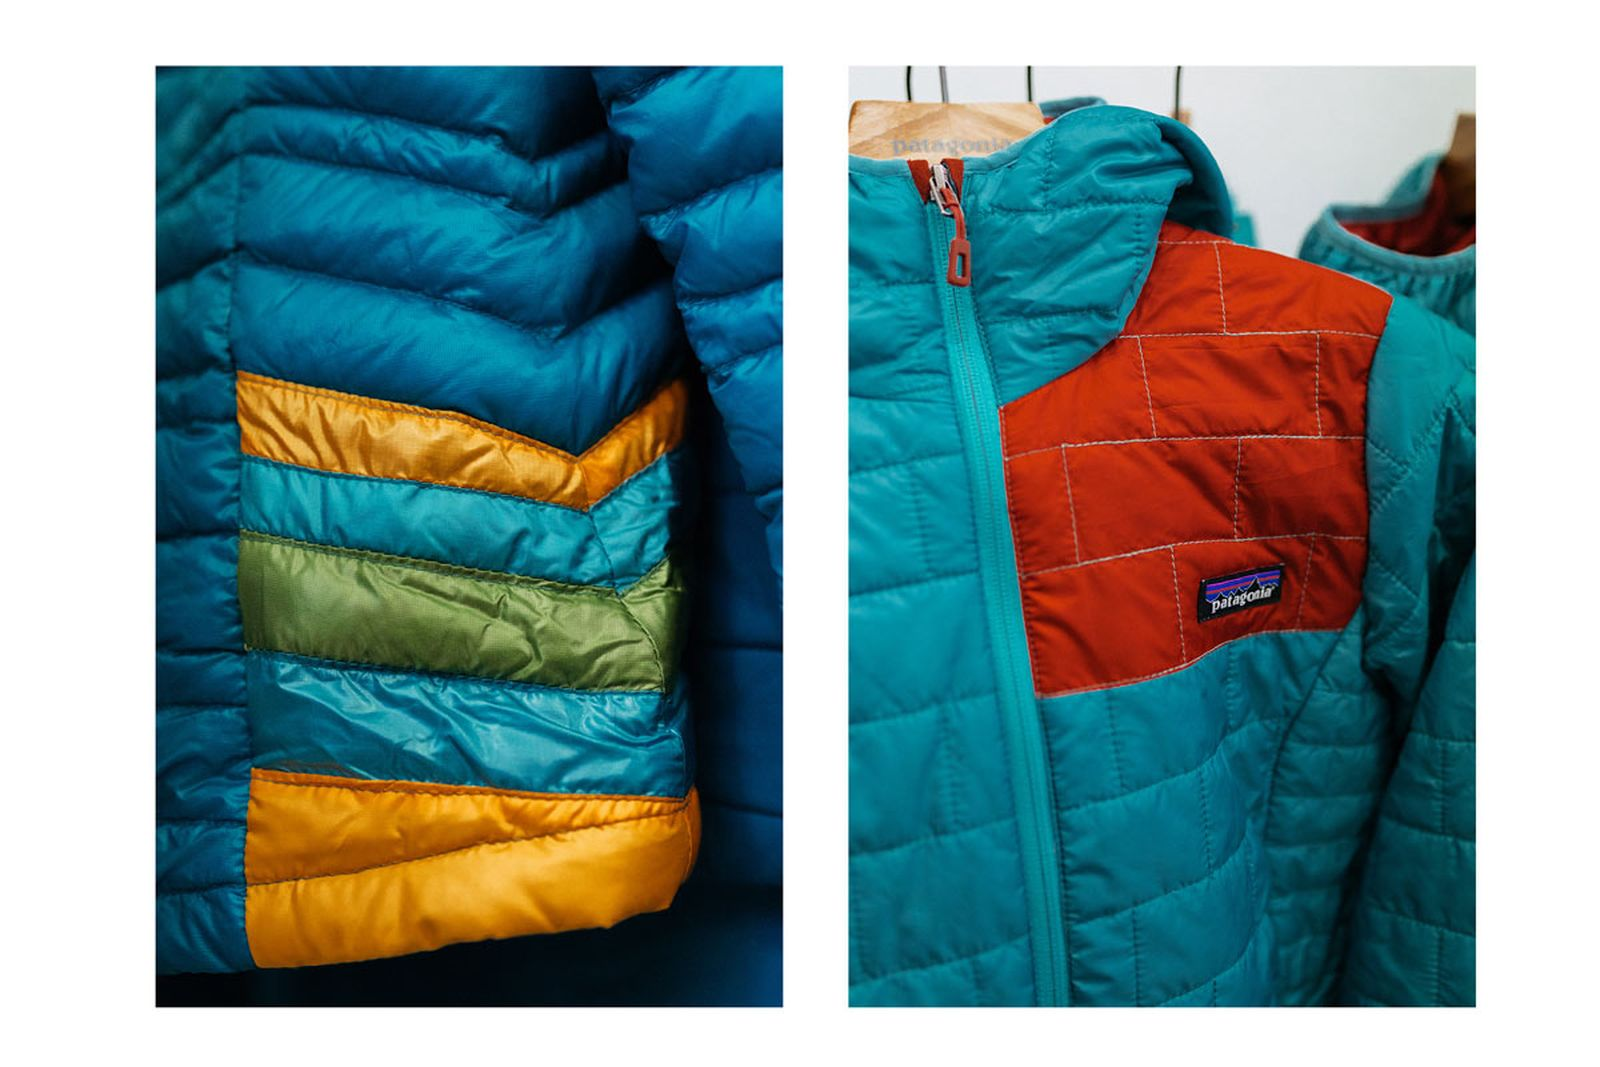 patagonia second hand clean clothes